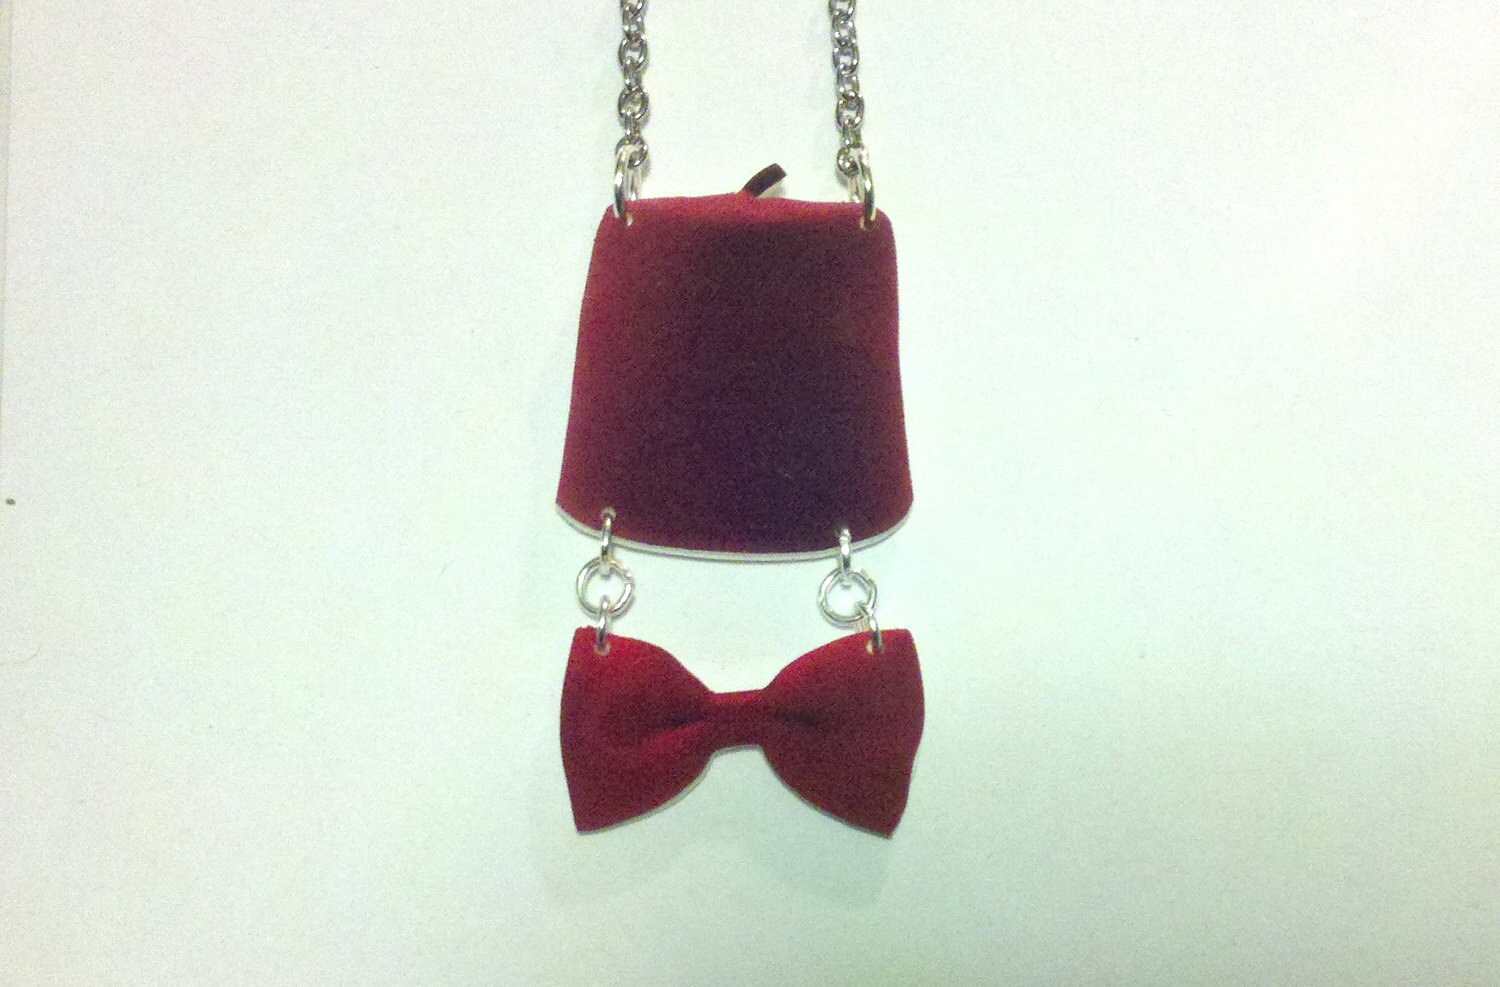 11th Doctor charm necklace - Doctor Who Jewelry - Fez and Bowie